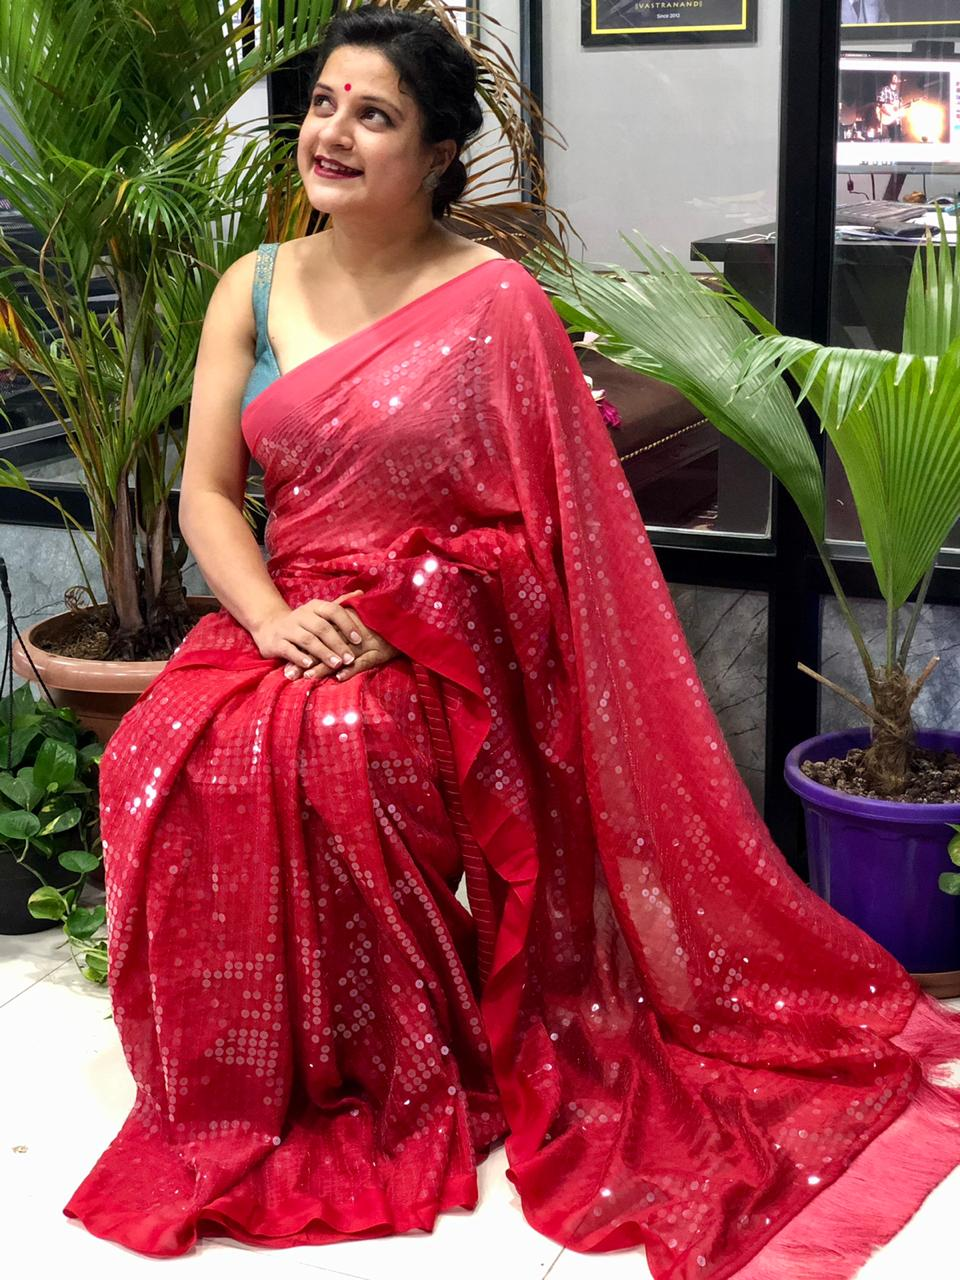 Stunning Two Tone shade Big Sequence Bollywood Style saree (Red) dvz0001460